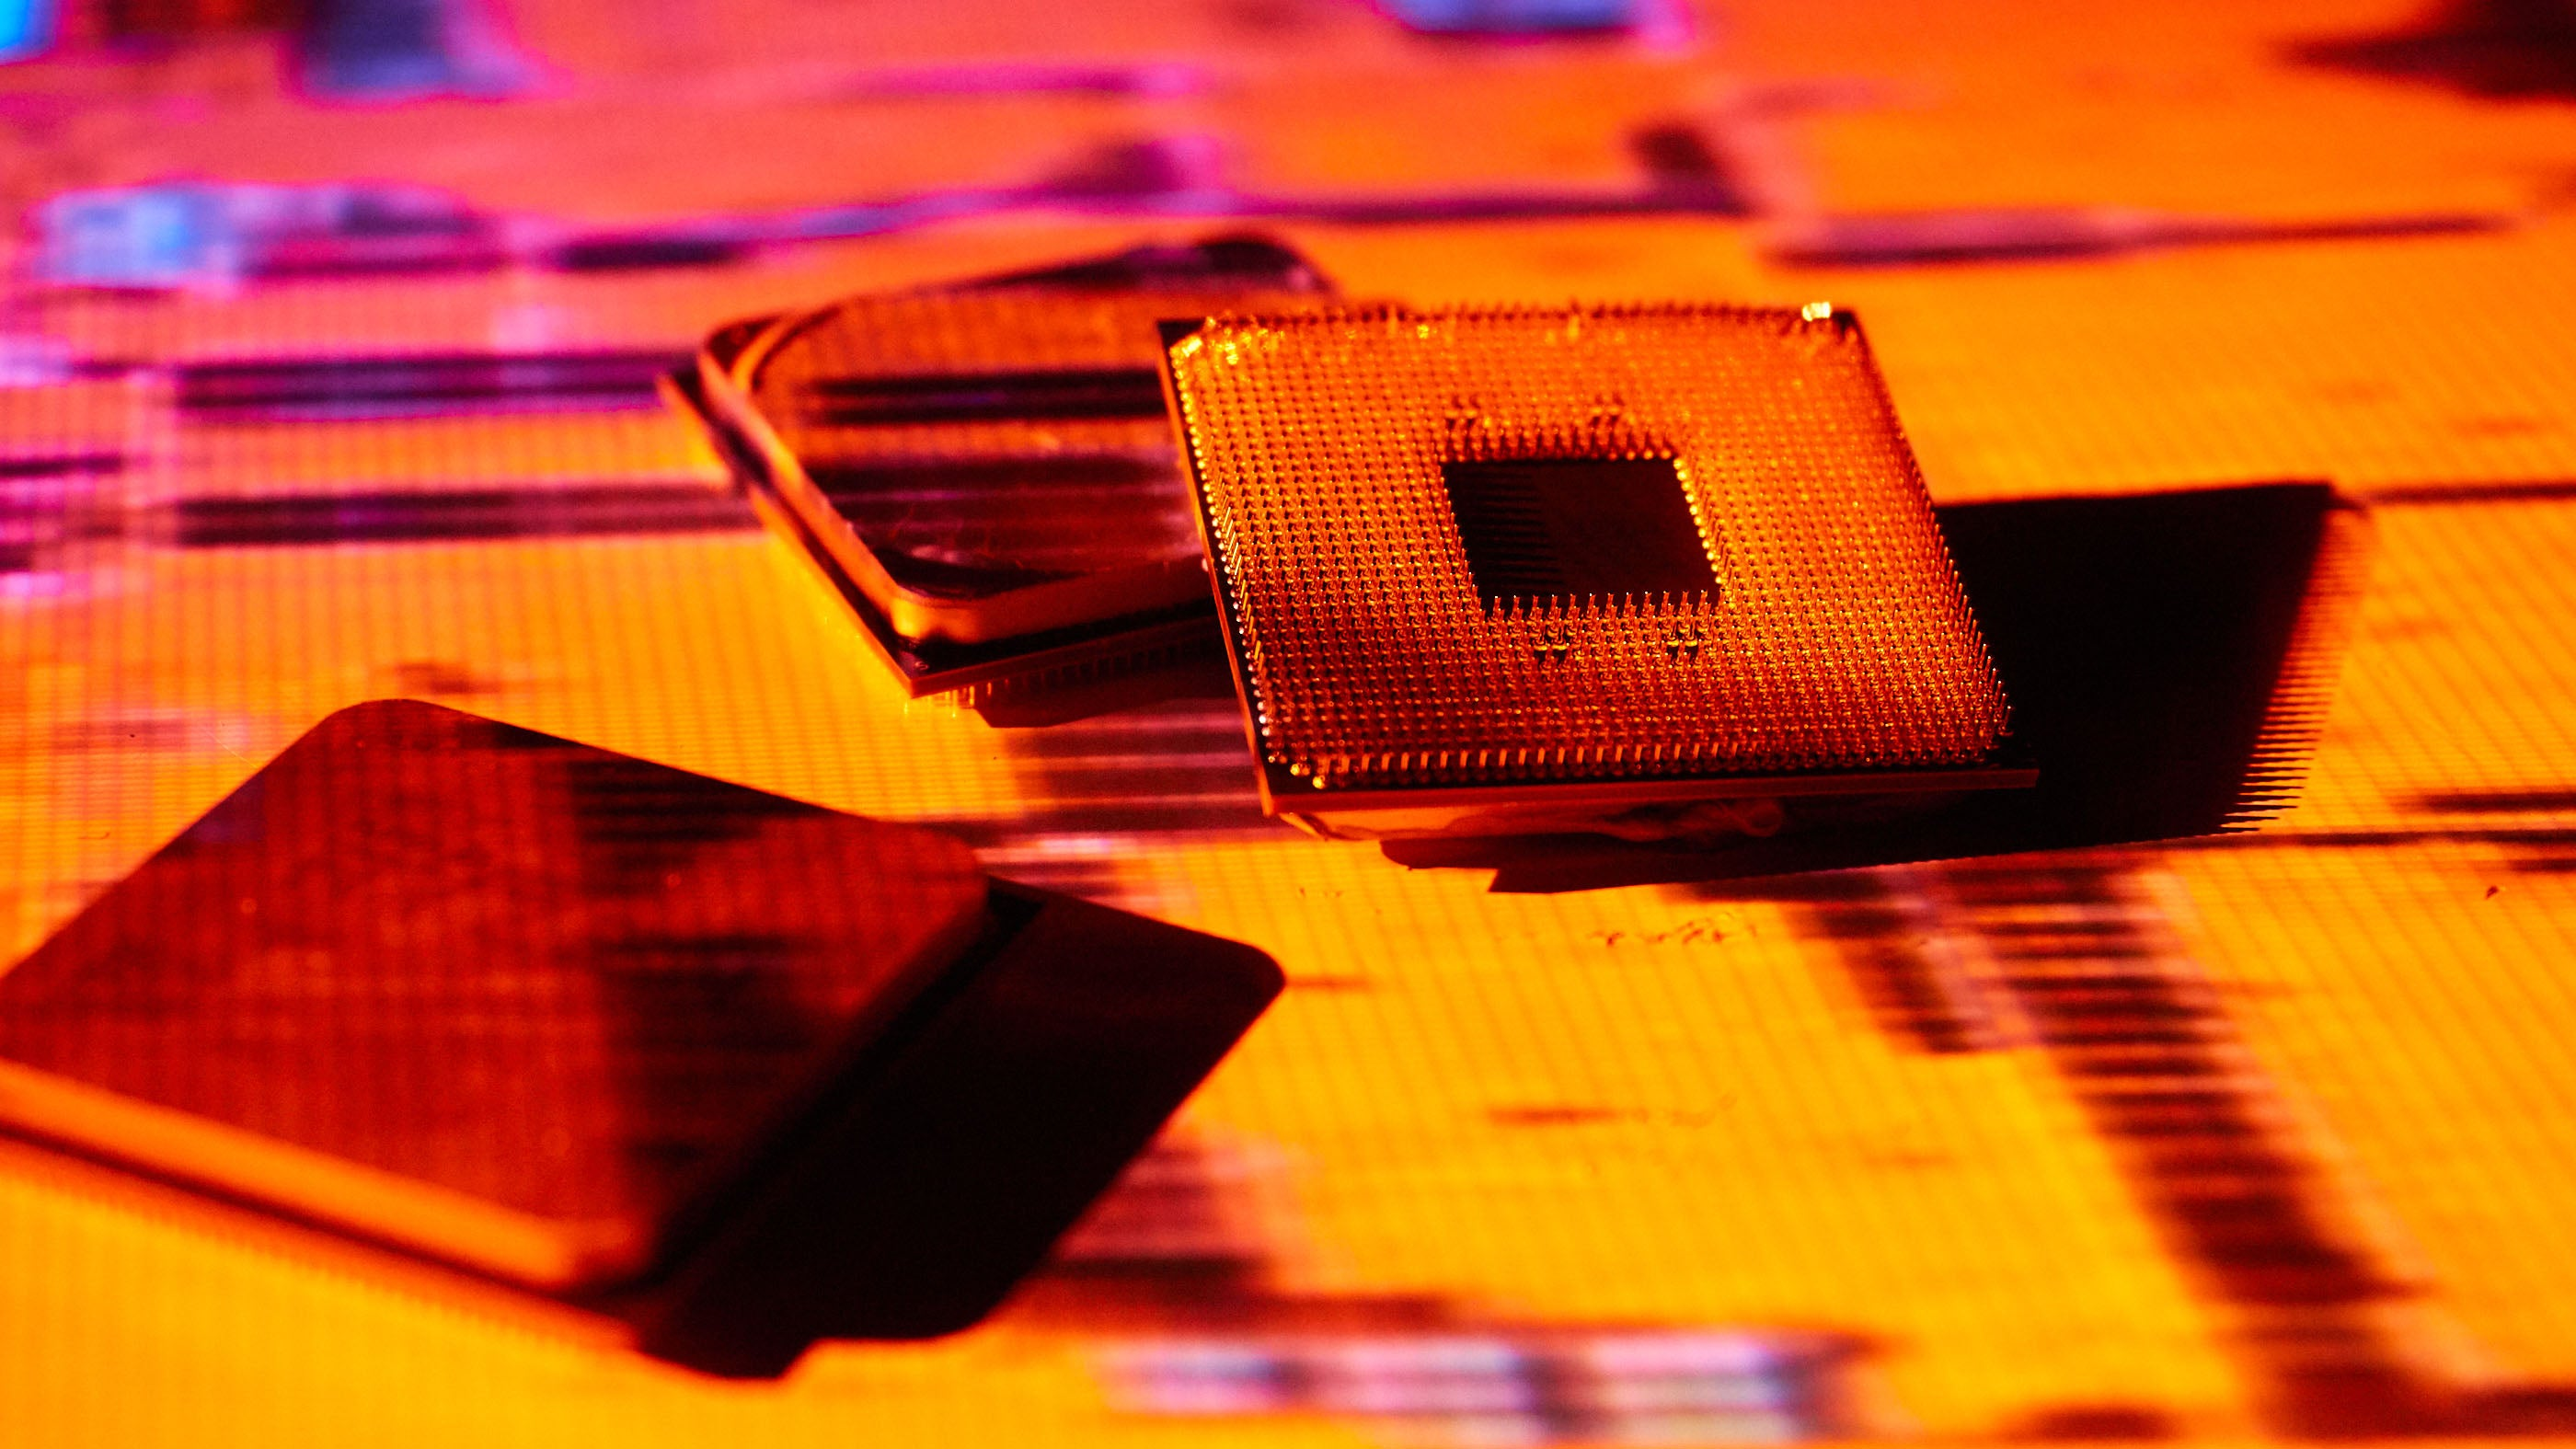 Processor Makers Confirm New Security Flaws, So Update Now